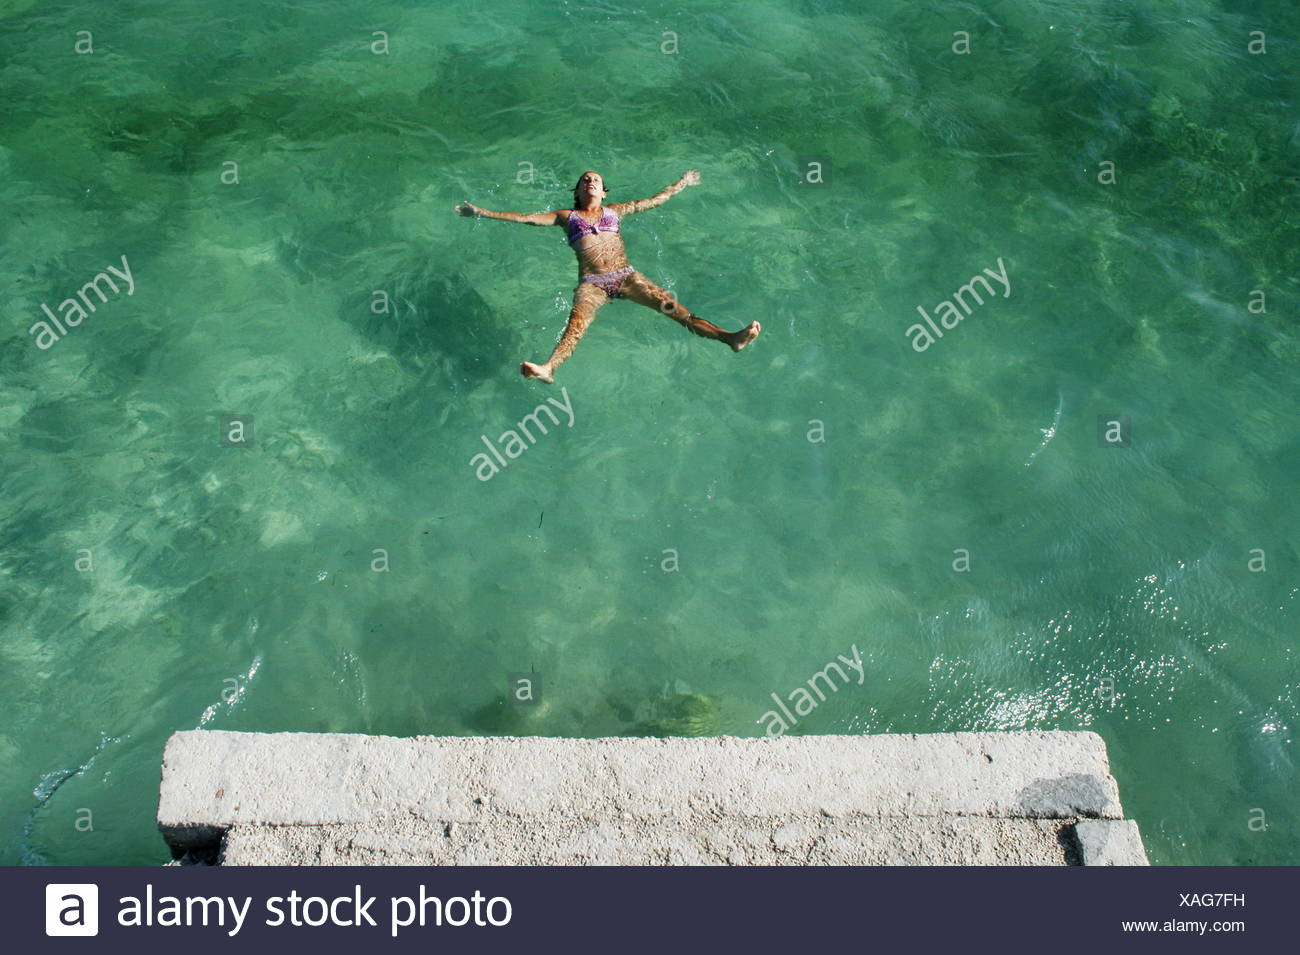 La Croatie, Dalmatie, Trogir, Mid-adult woman flottant dans la mer verte Photo Stock